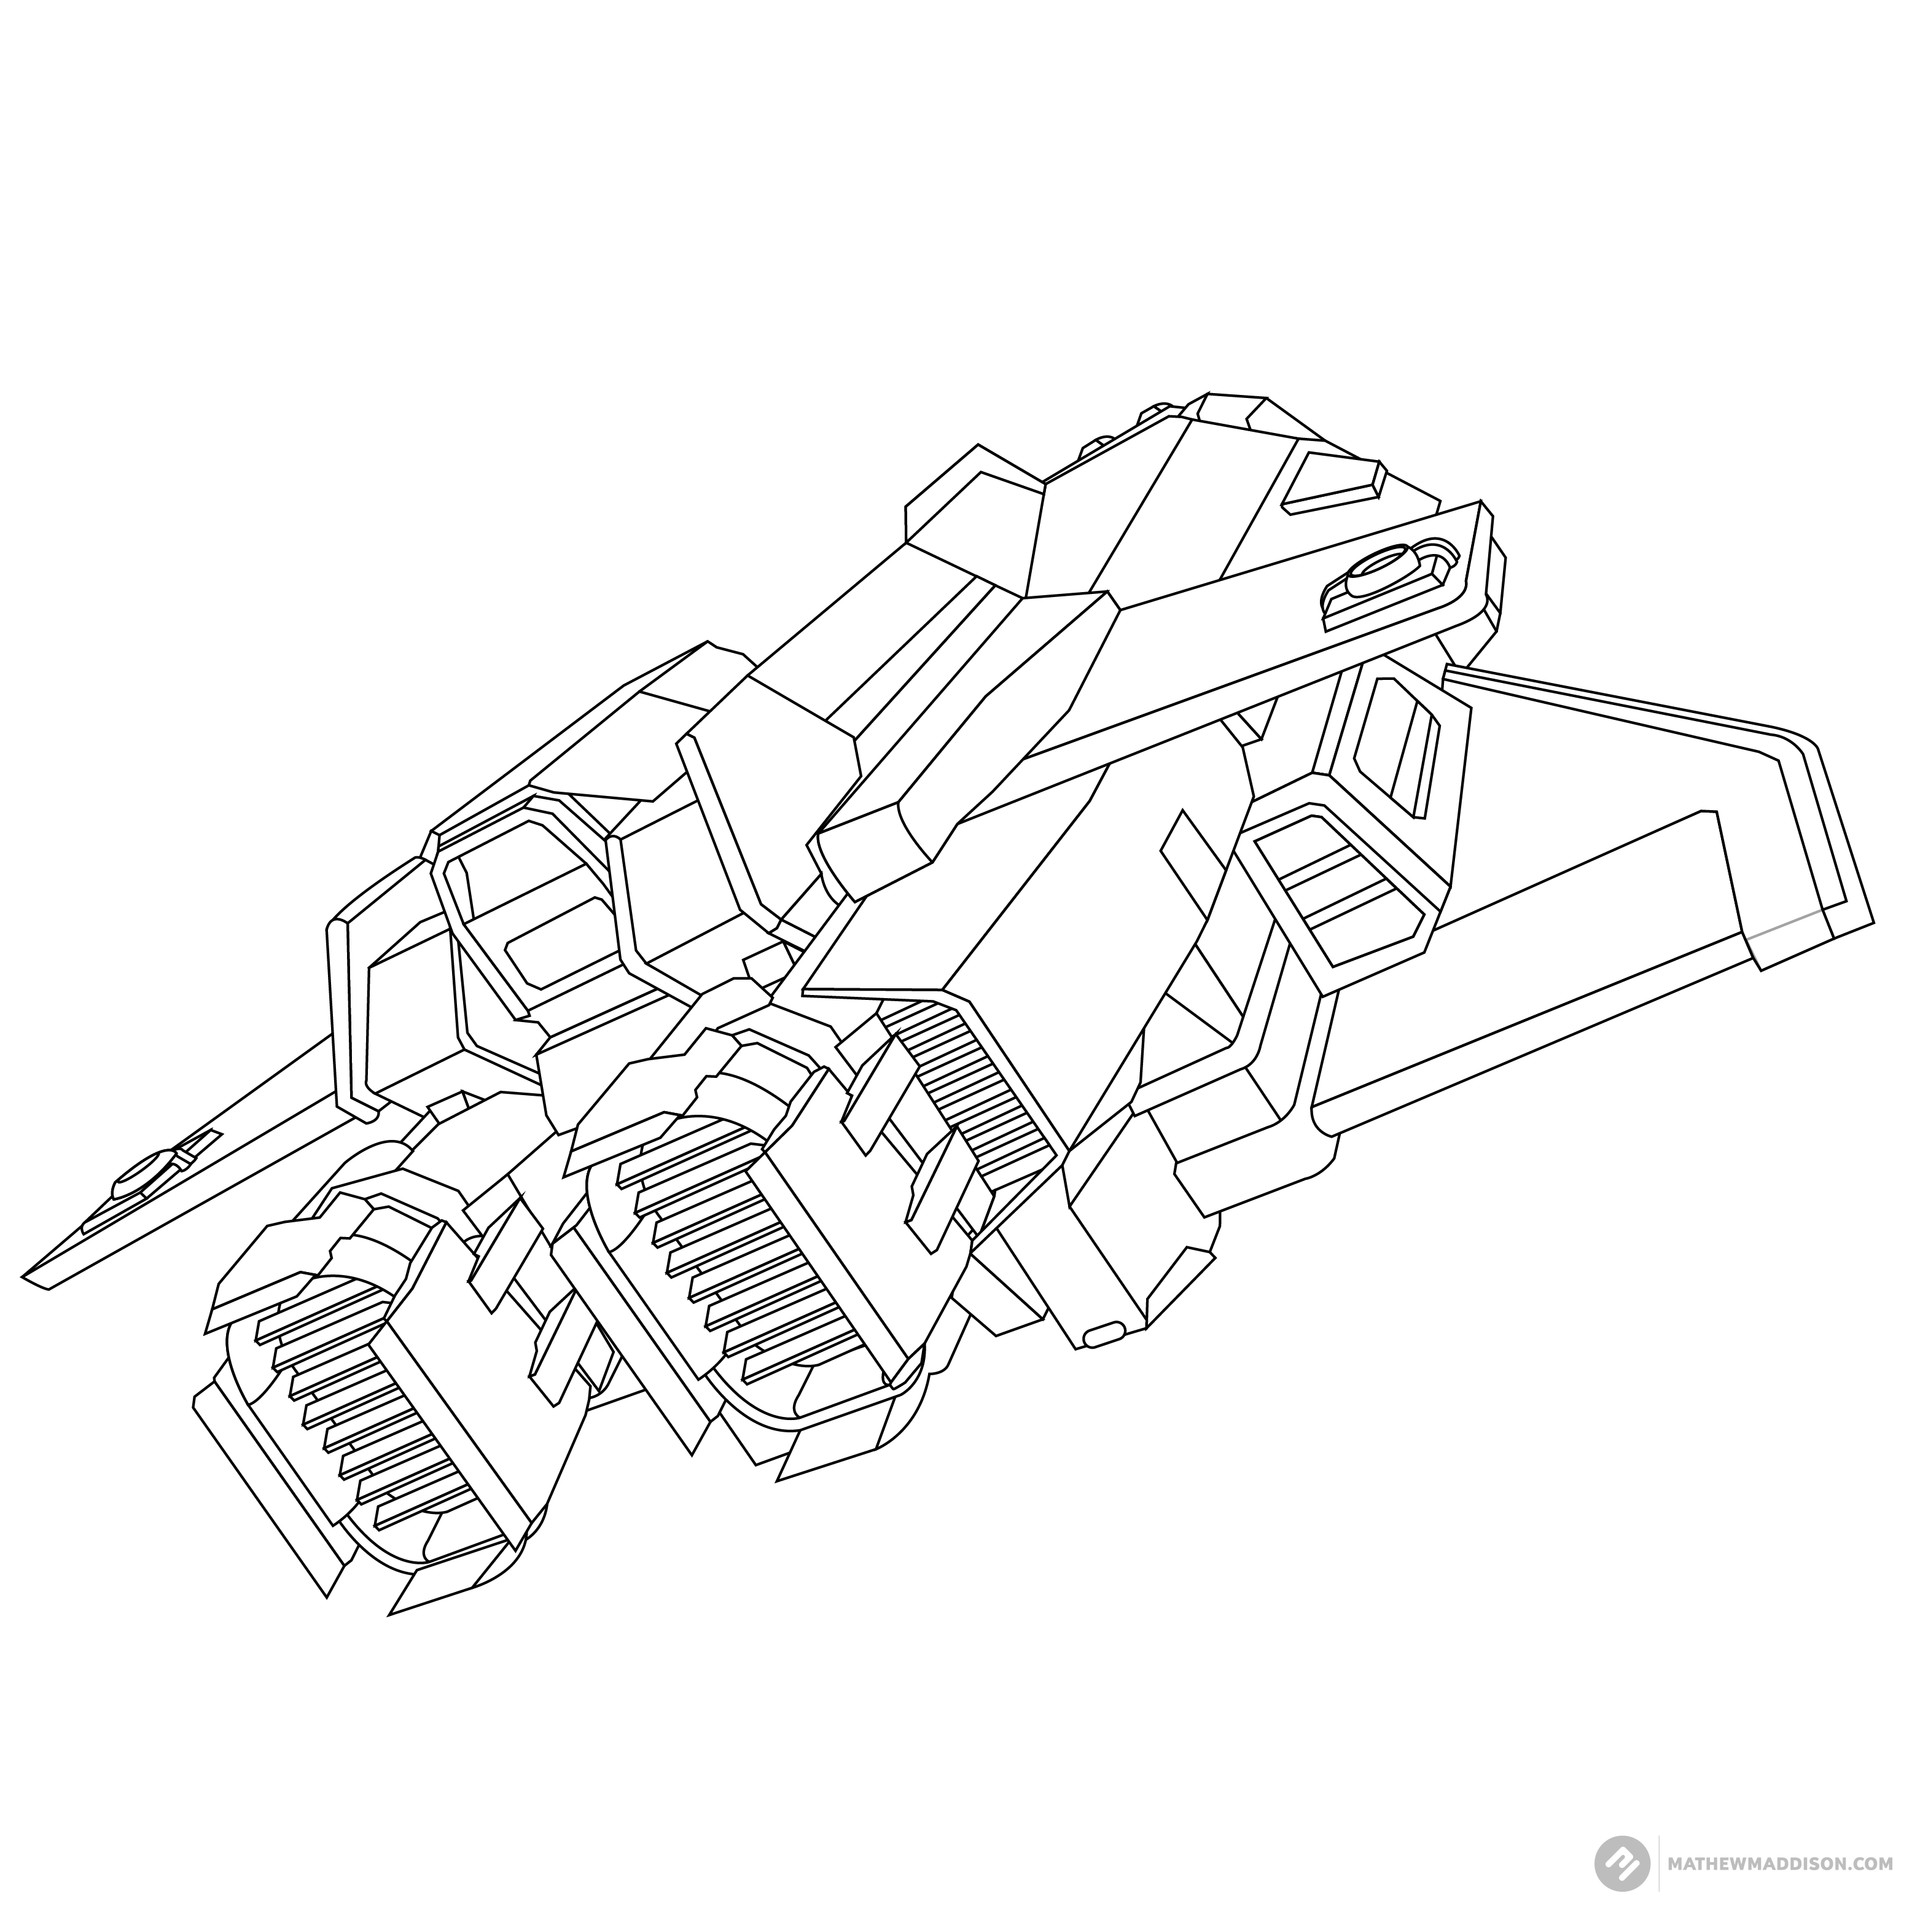 Mathew maddison elite ship no colours by mathew maddsion 04